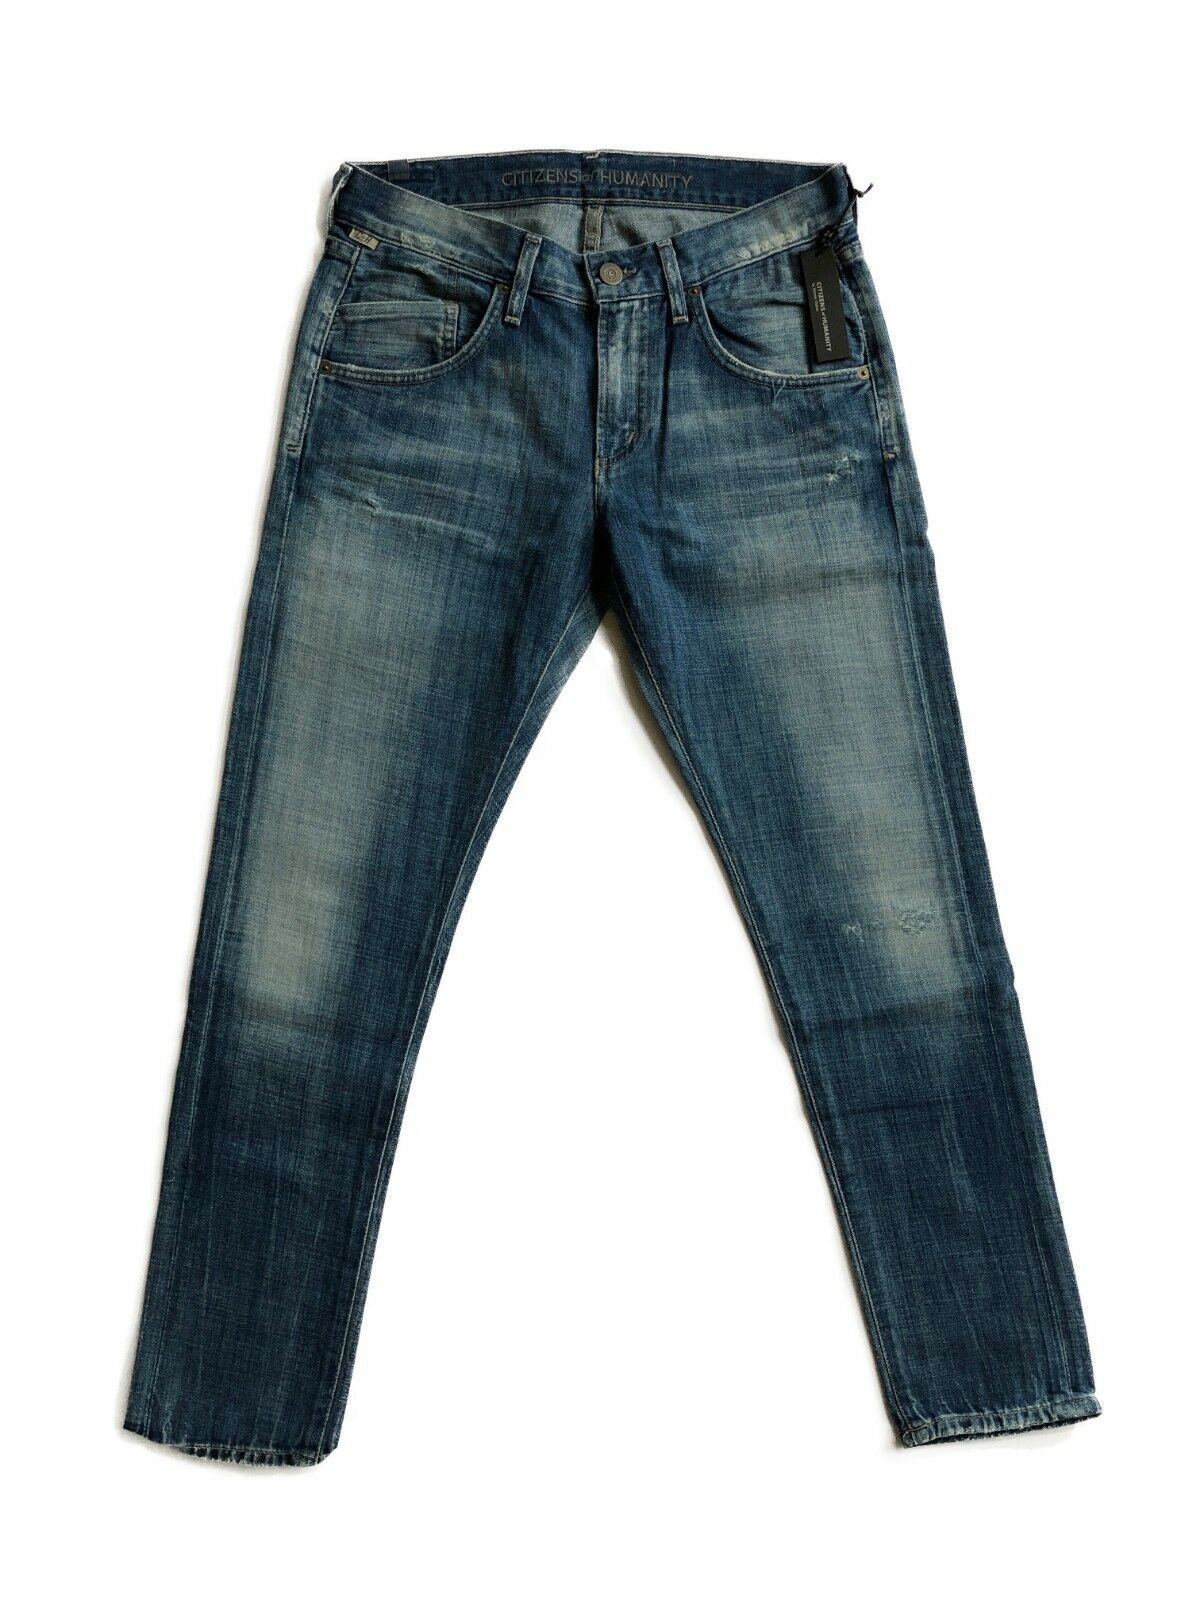 CITIZENS OF HUMANITY Cropped Lennox Slim Relaxed Jeans Circa bluee 24  198